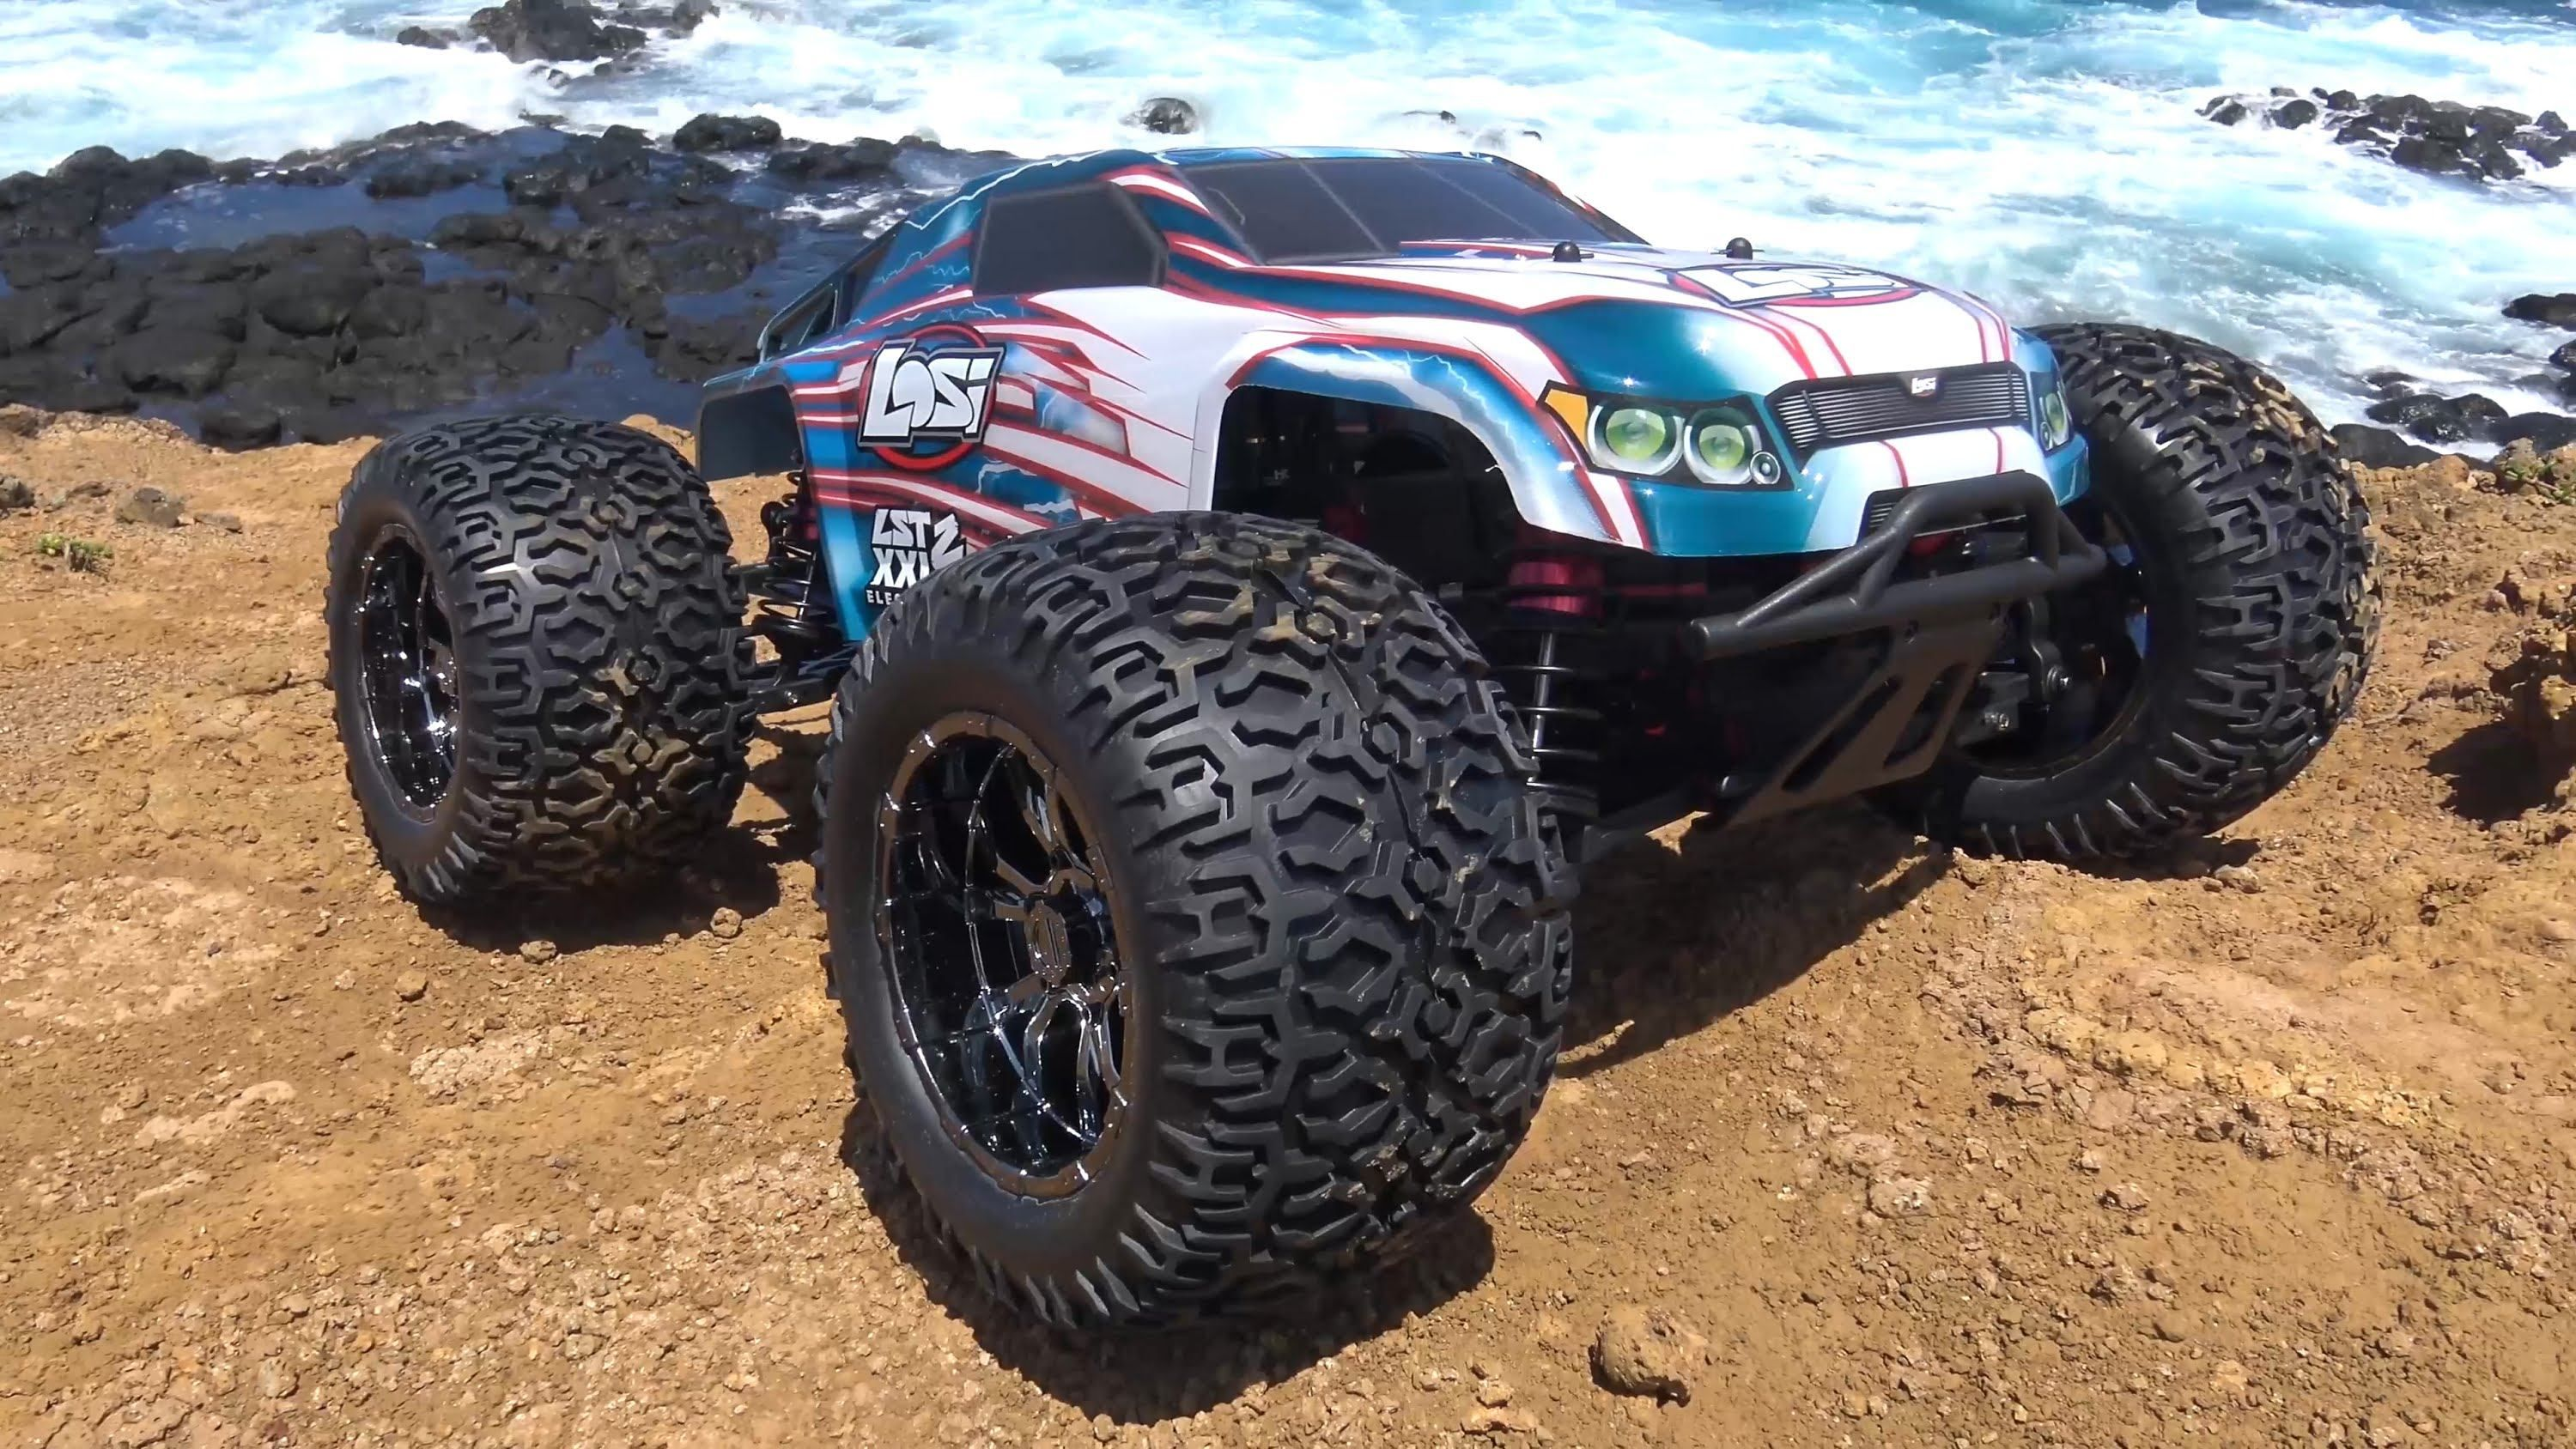 Do you enjoy operating rc cars and trucks if you do you might want